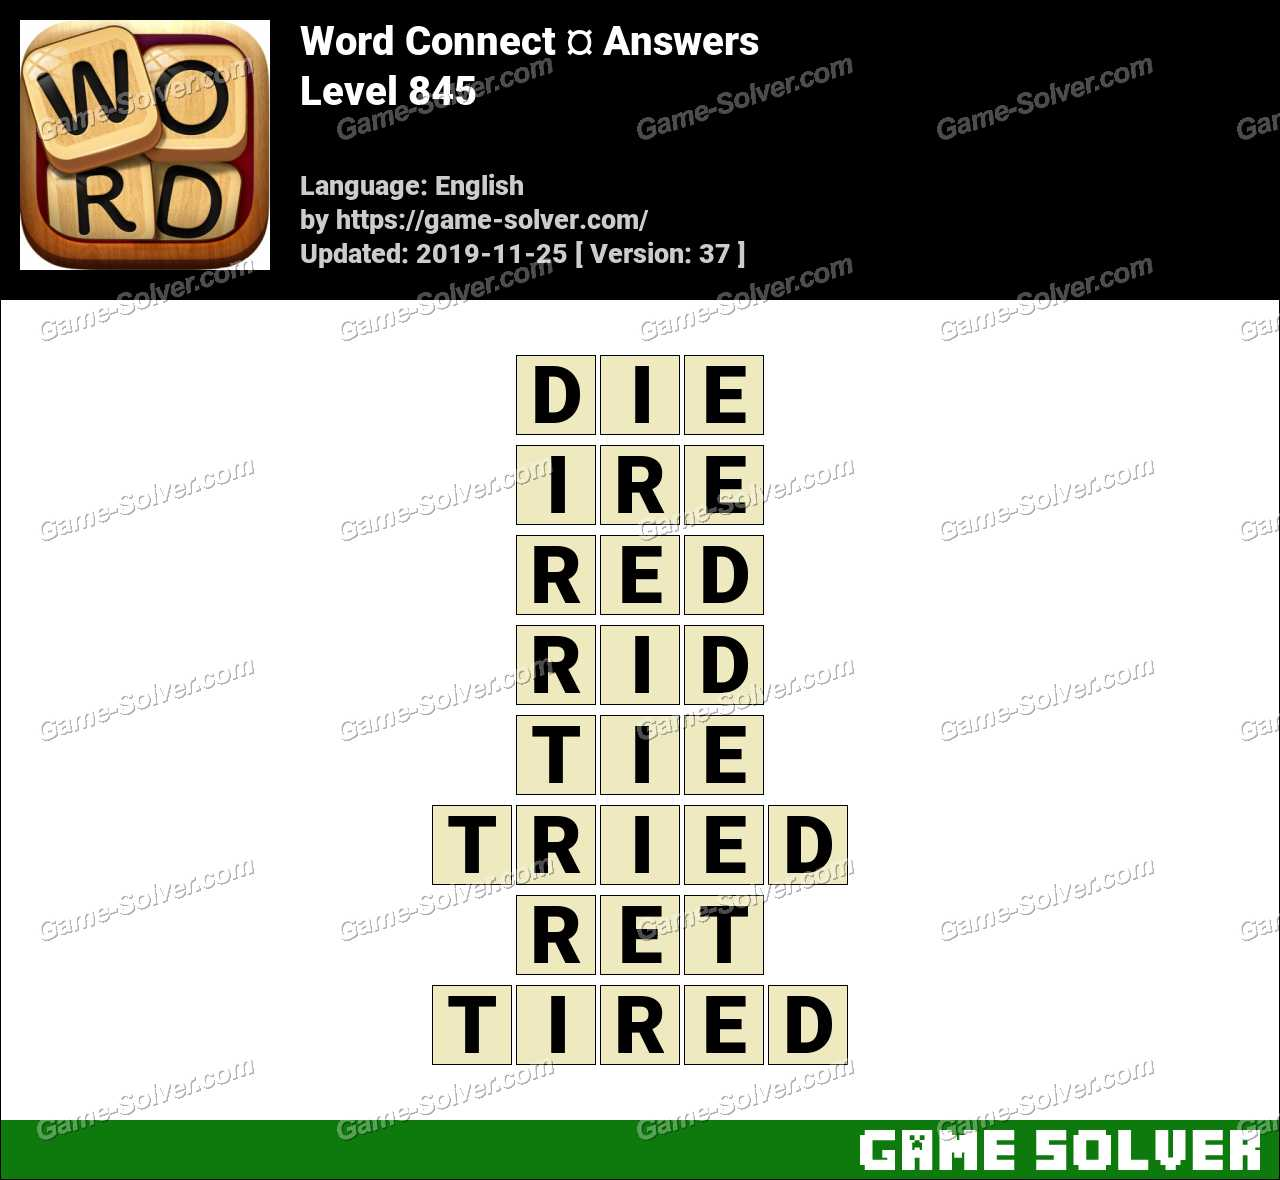 Word Connect Level 845 Answers